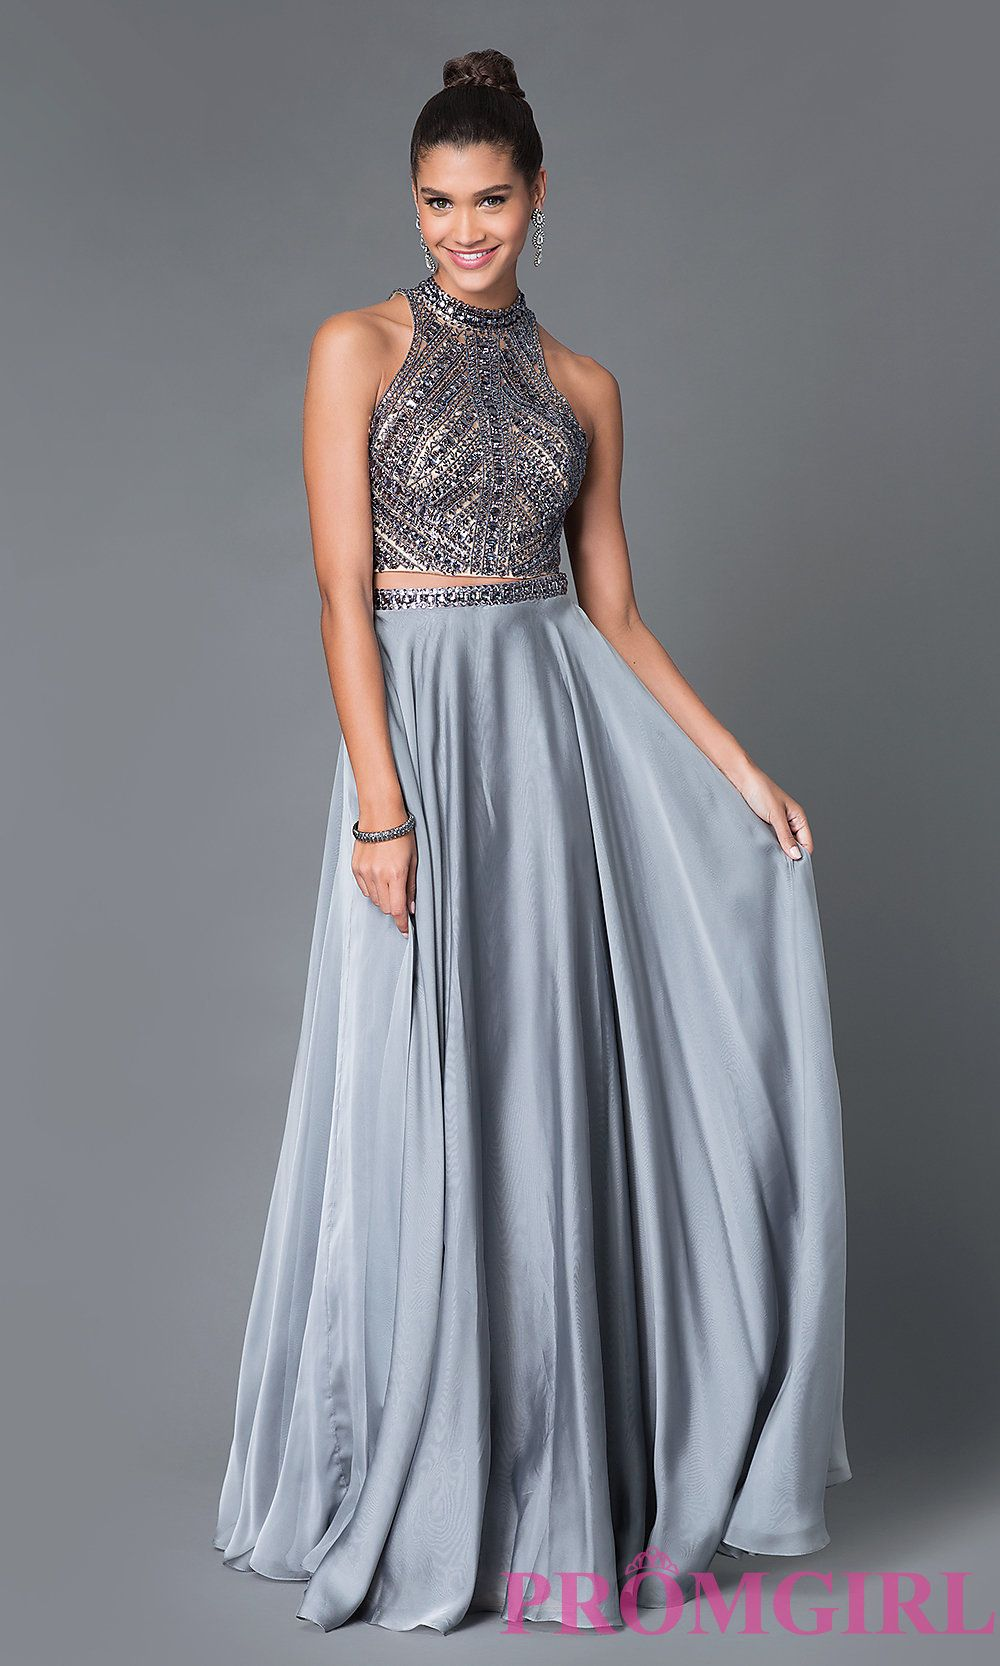 Long TwoPiece Jeweled OpenBack Prom Dress Grad dresses